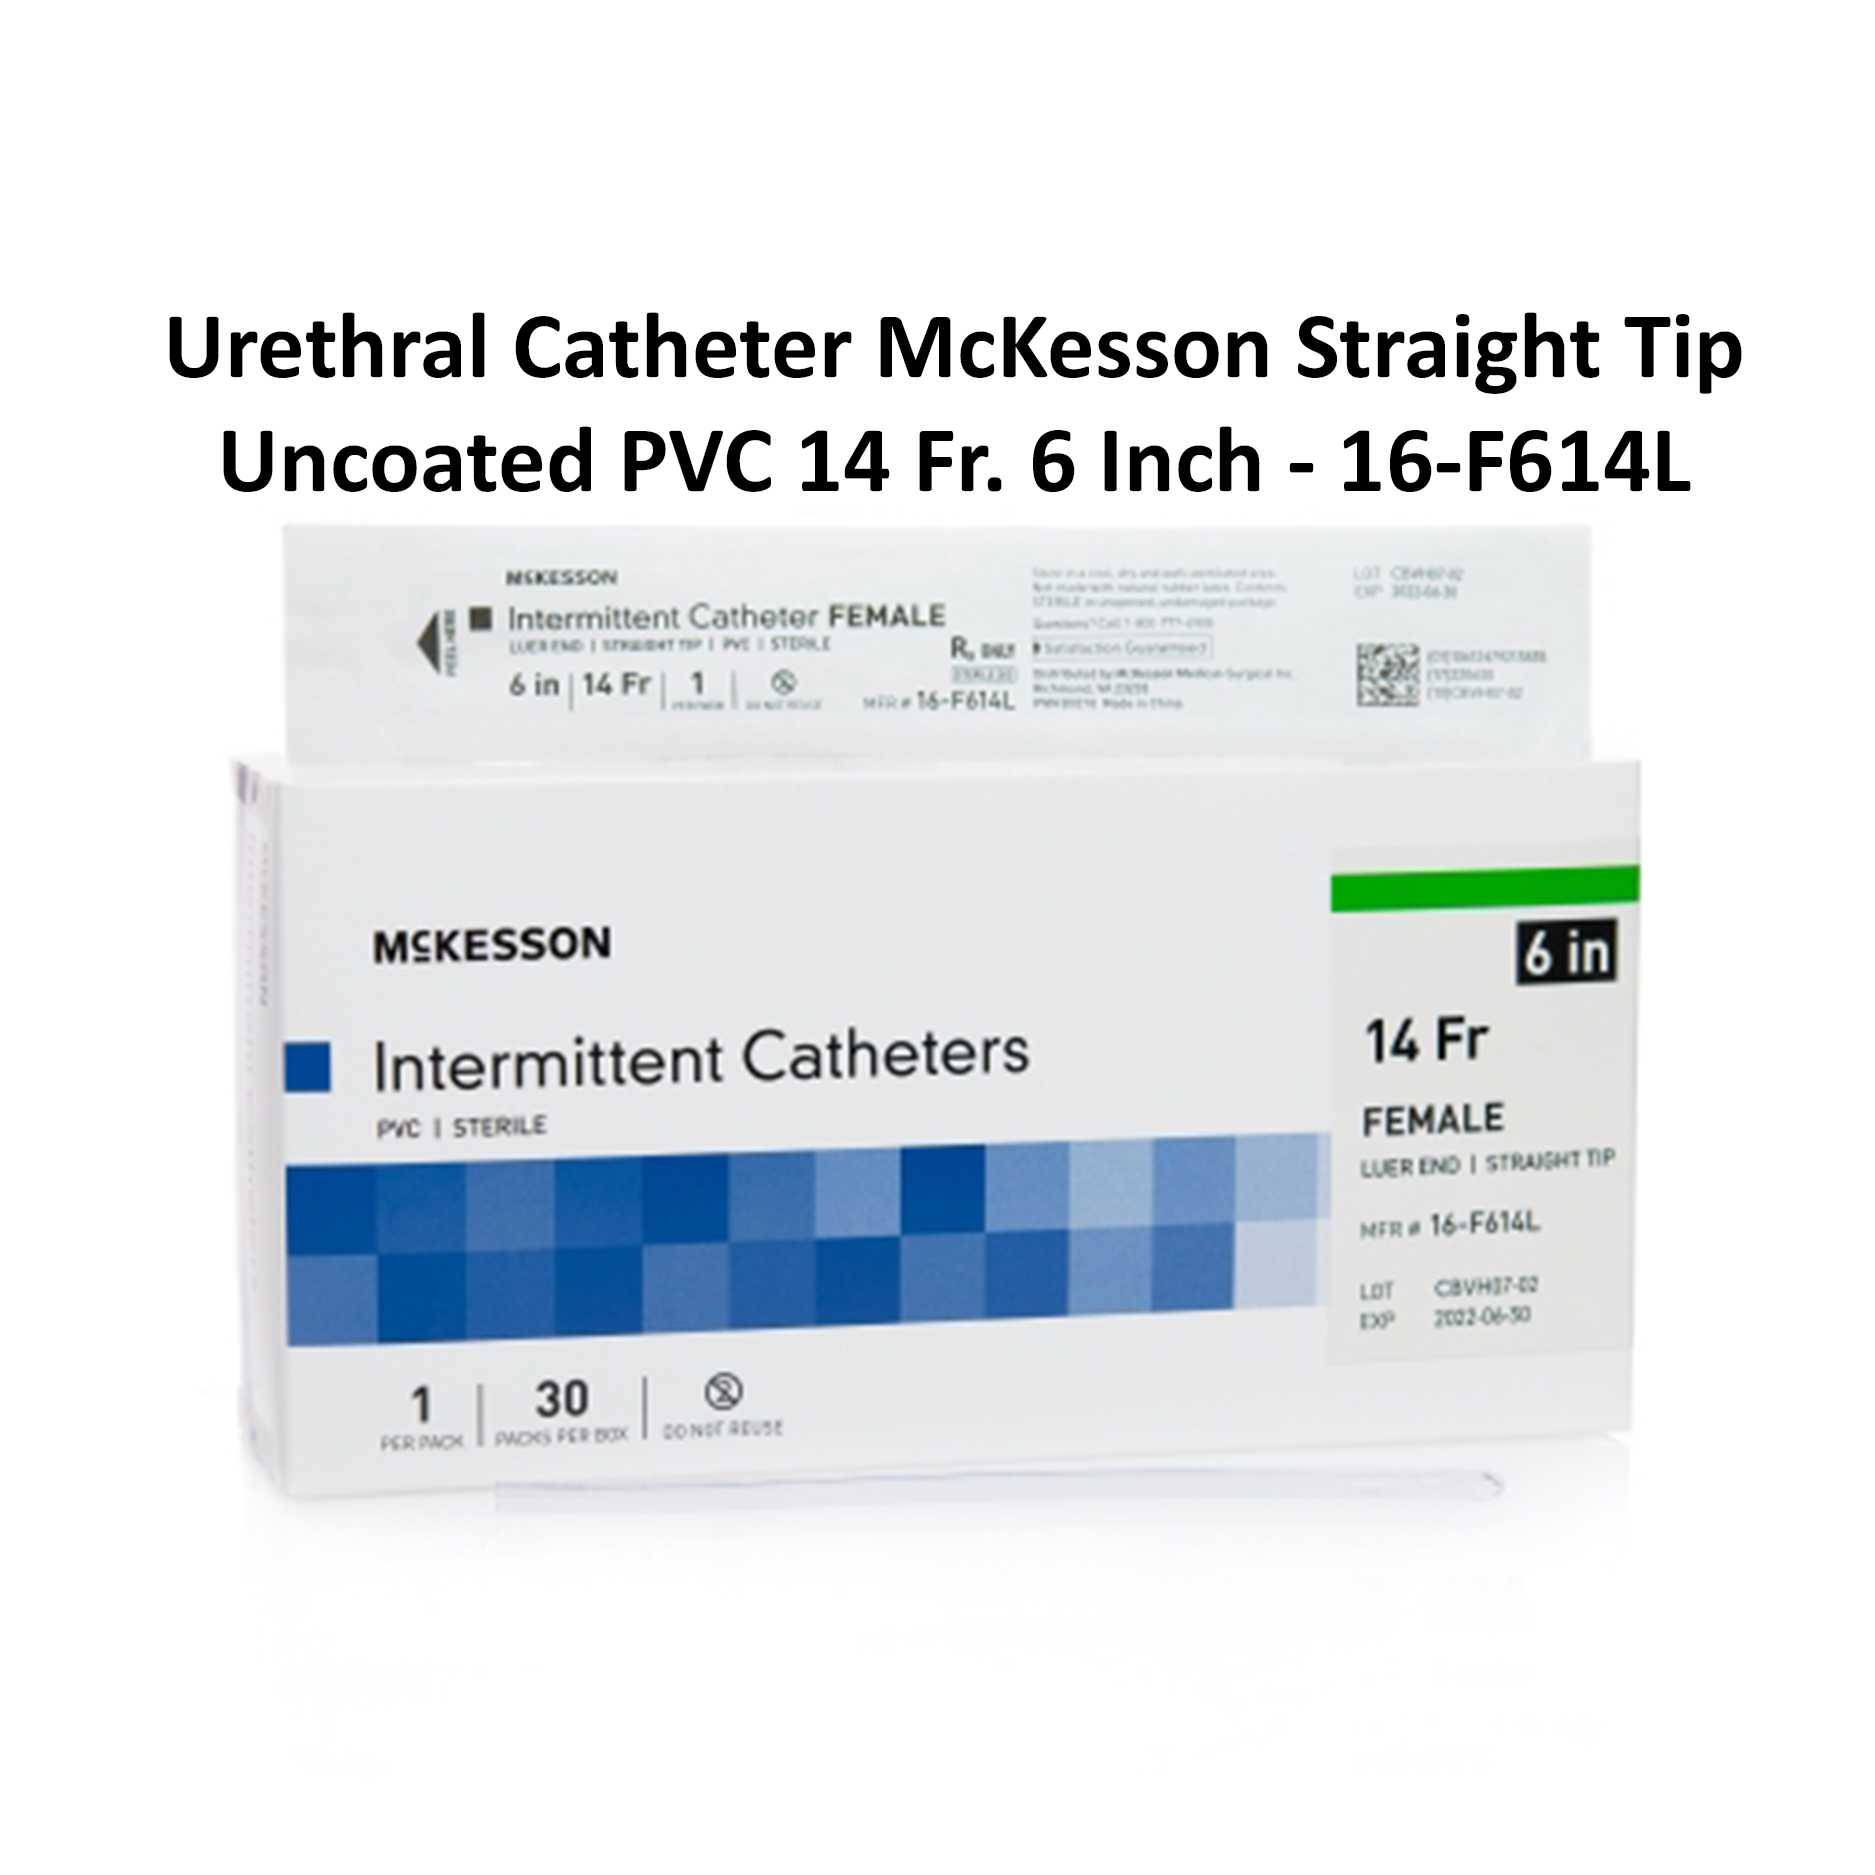 Urethral Catheter McKesson Straight Tip Uncoated PVC 14 Fr. 6 Inch - 16-F614L